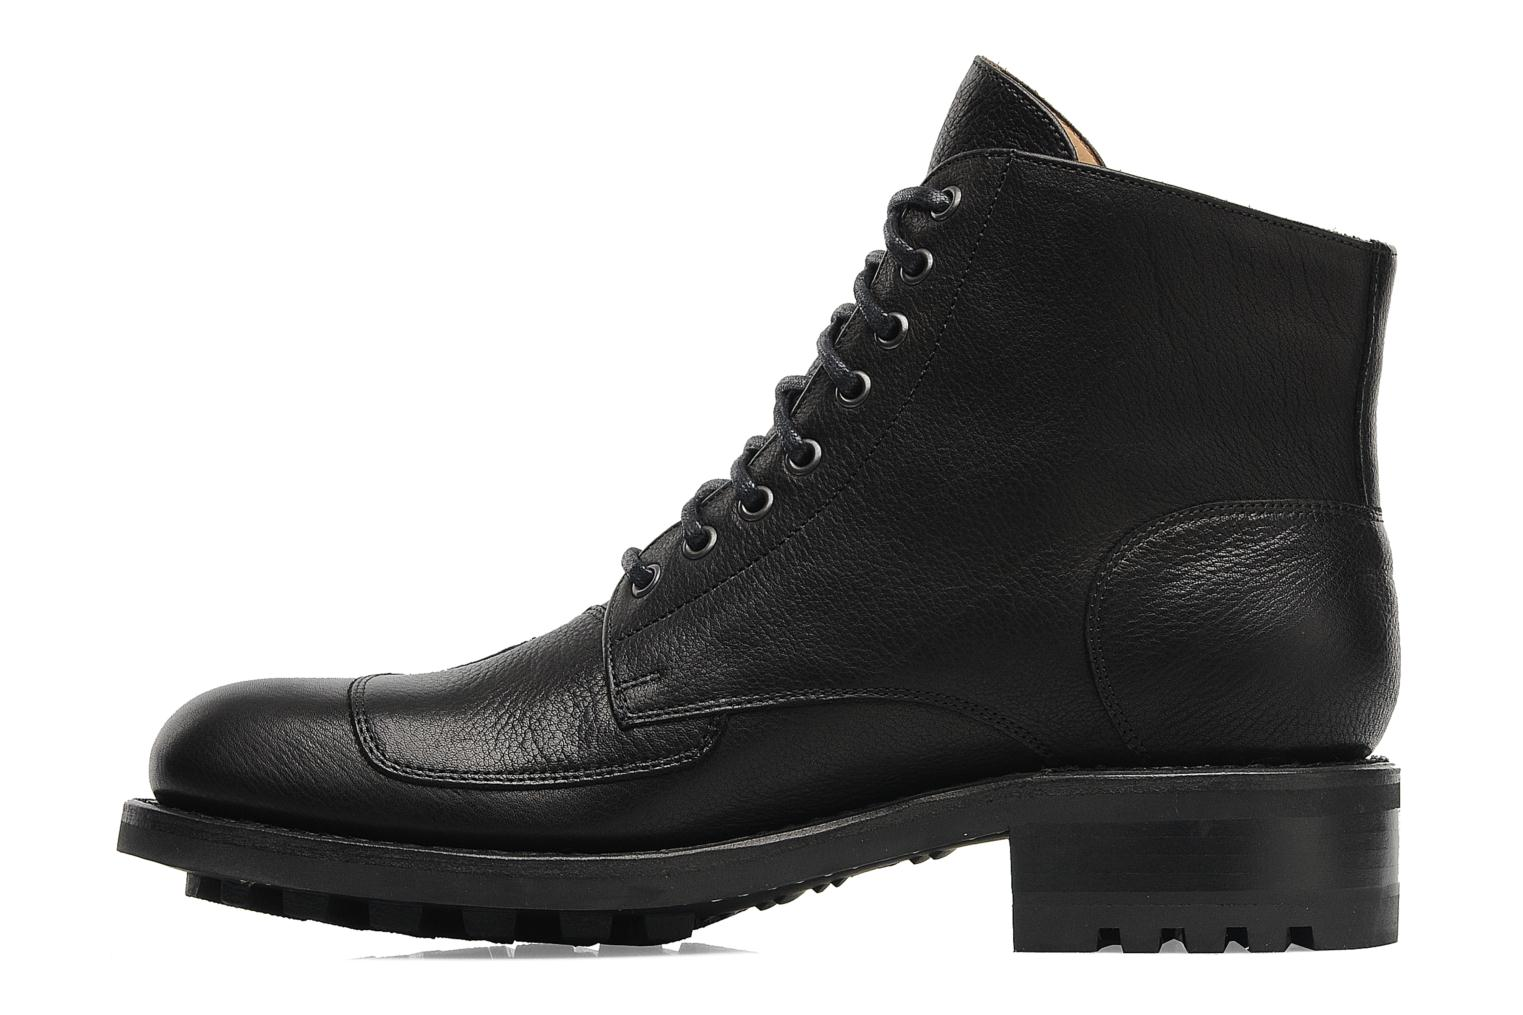 Bottines et boots Jean-Baptiste Rautureau Hyrod Lace Up Noir vue face